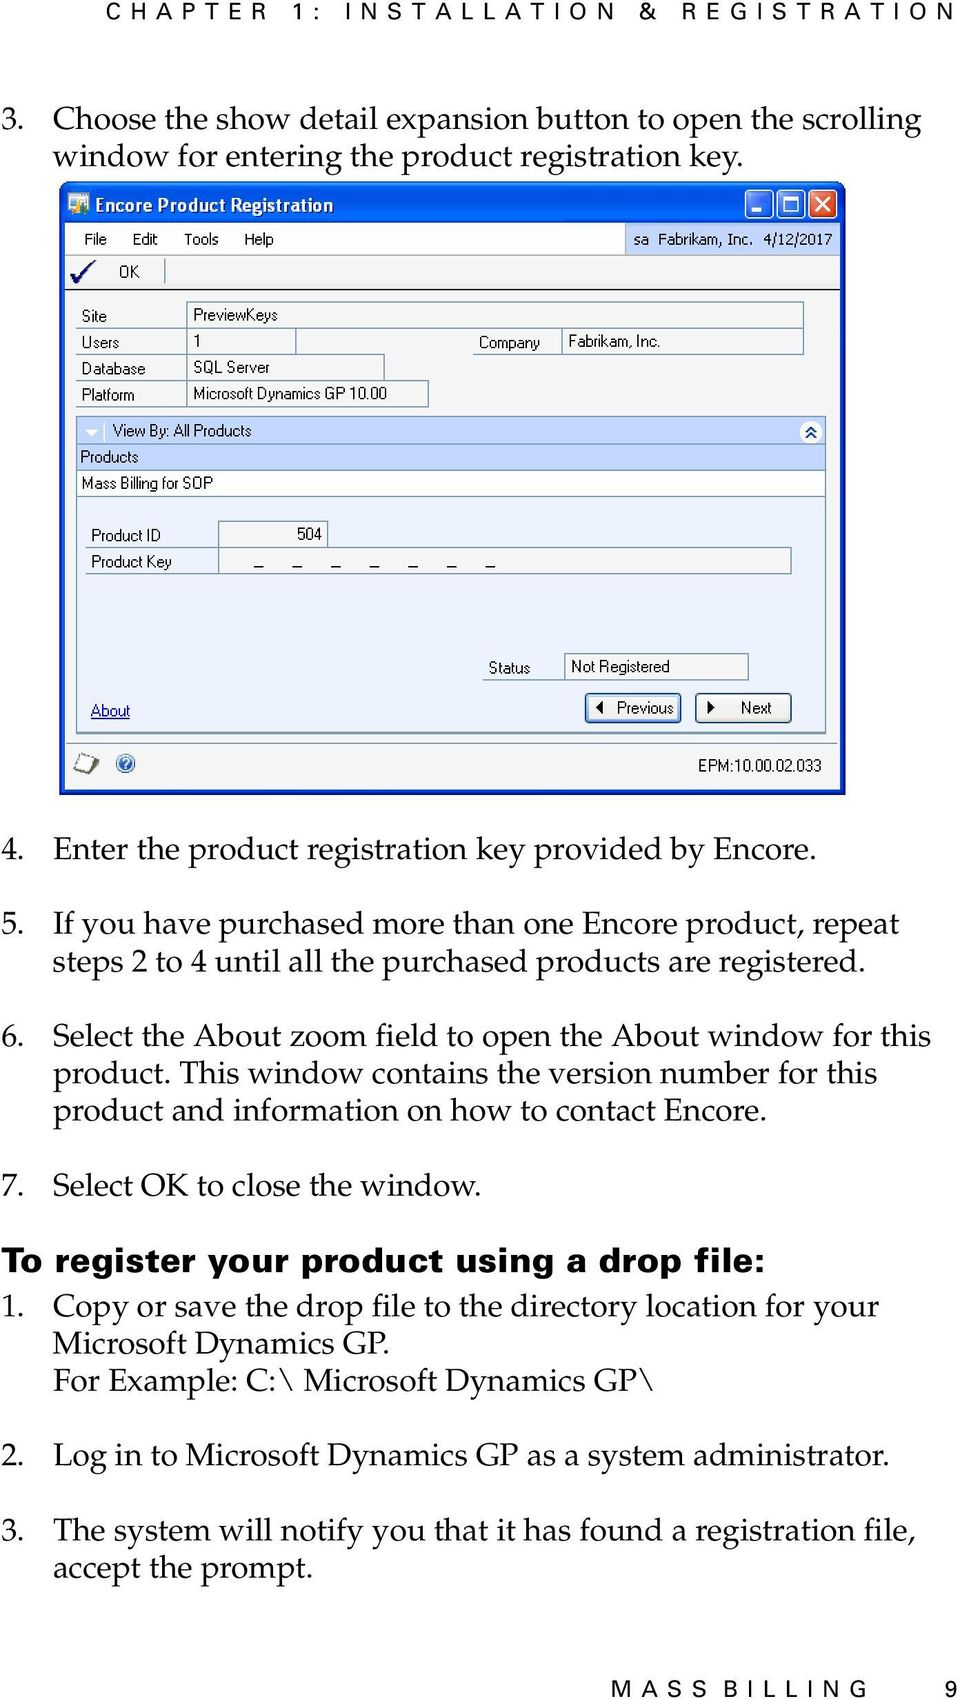 Select the About zoom field to open the About window for this product. This window contains the version number for this product and information on how to contact Encore. 7.